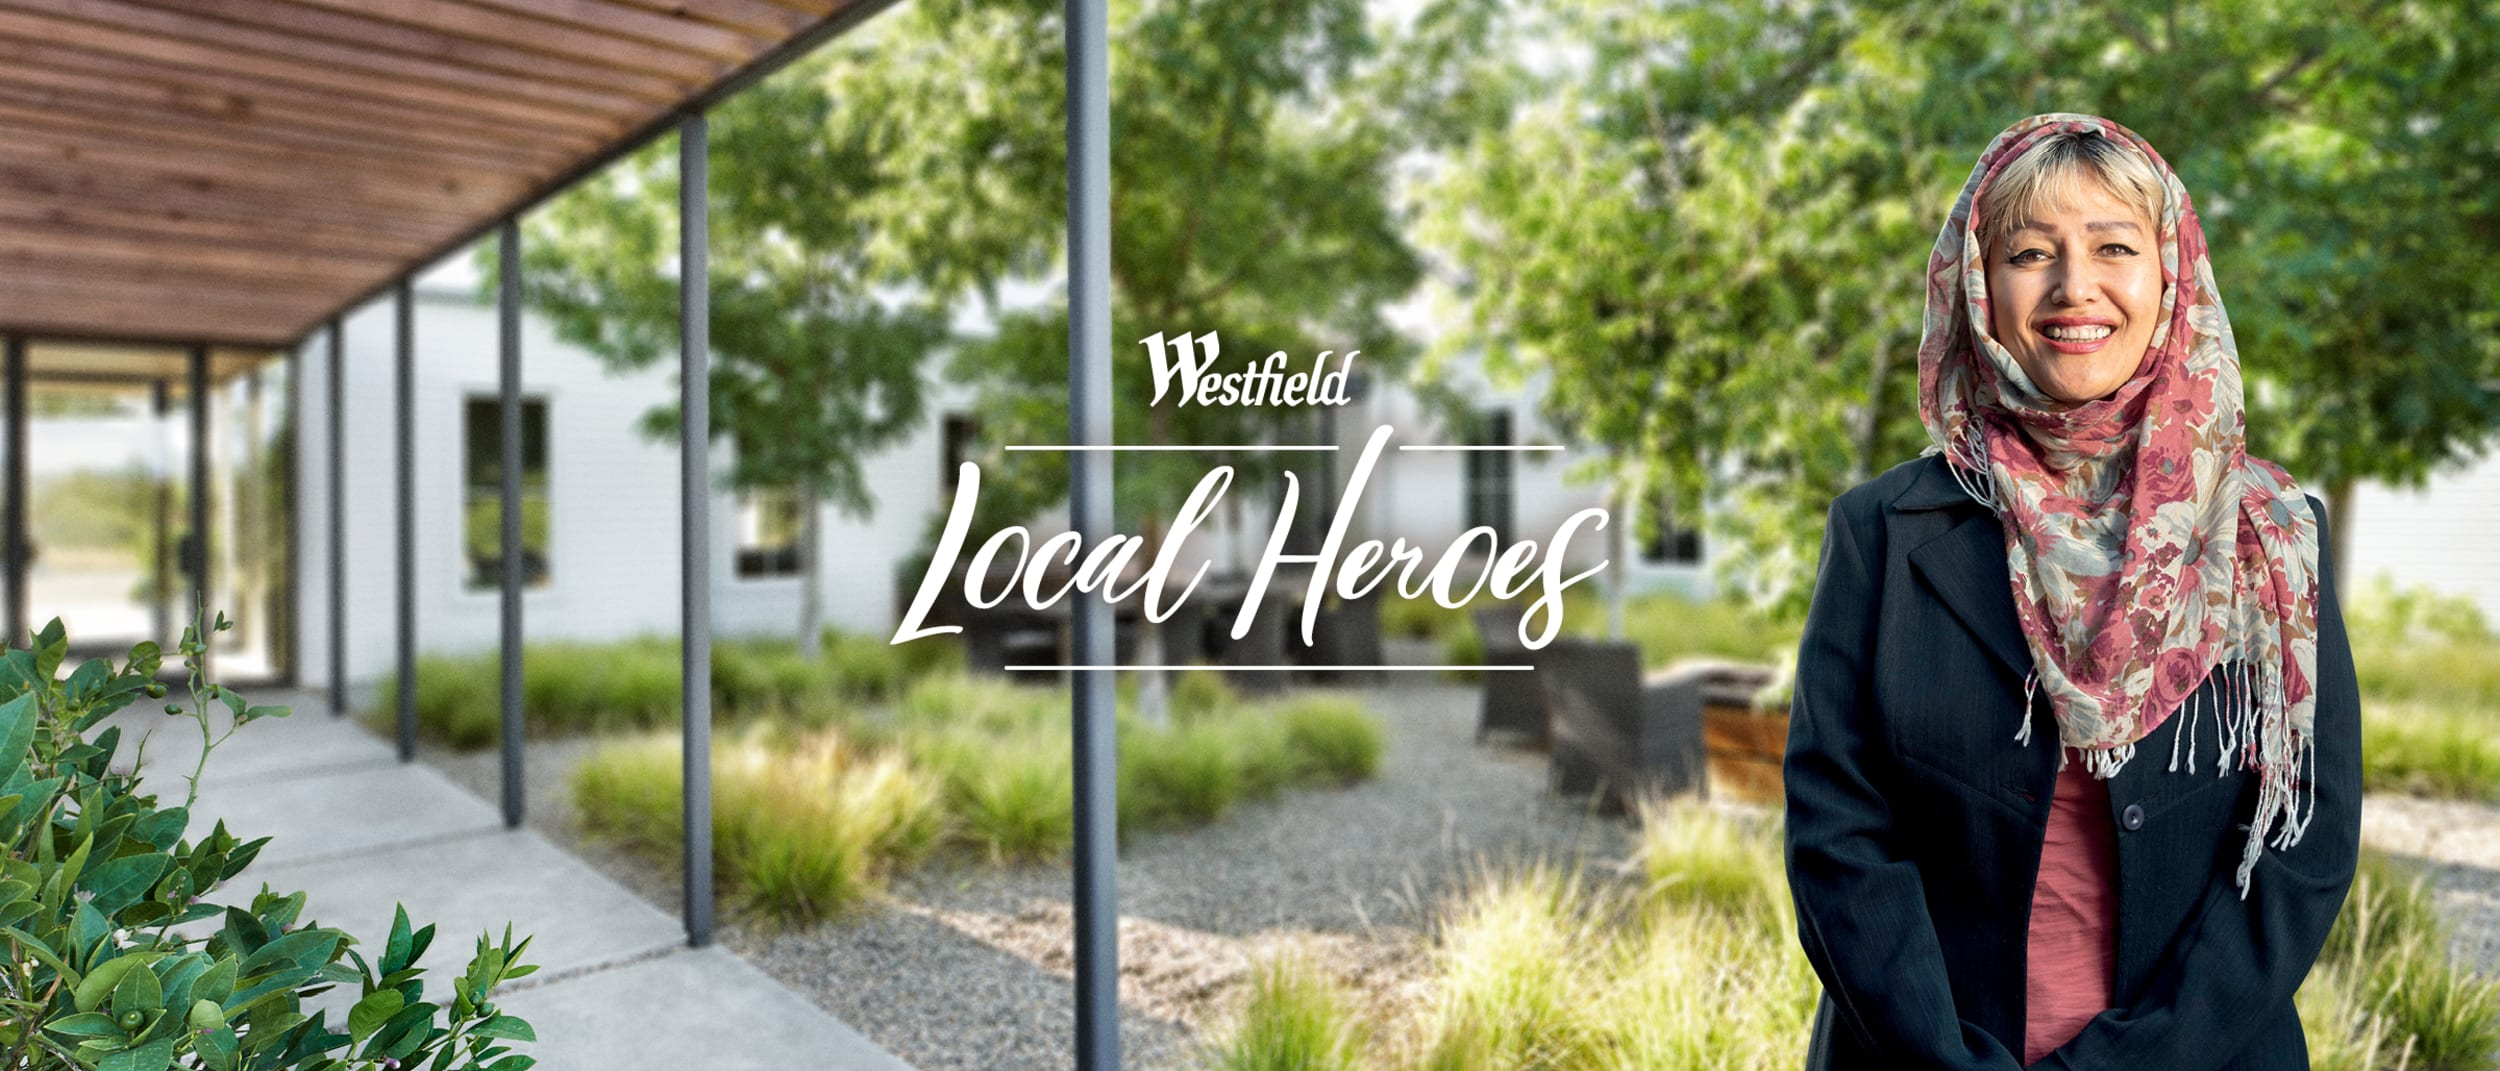 One Act. Big Impact. Nominate your Westfield Local Hero